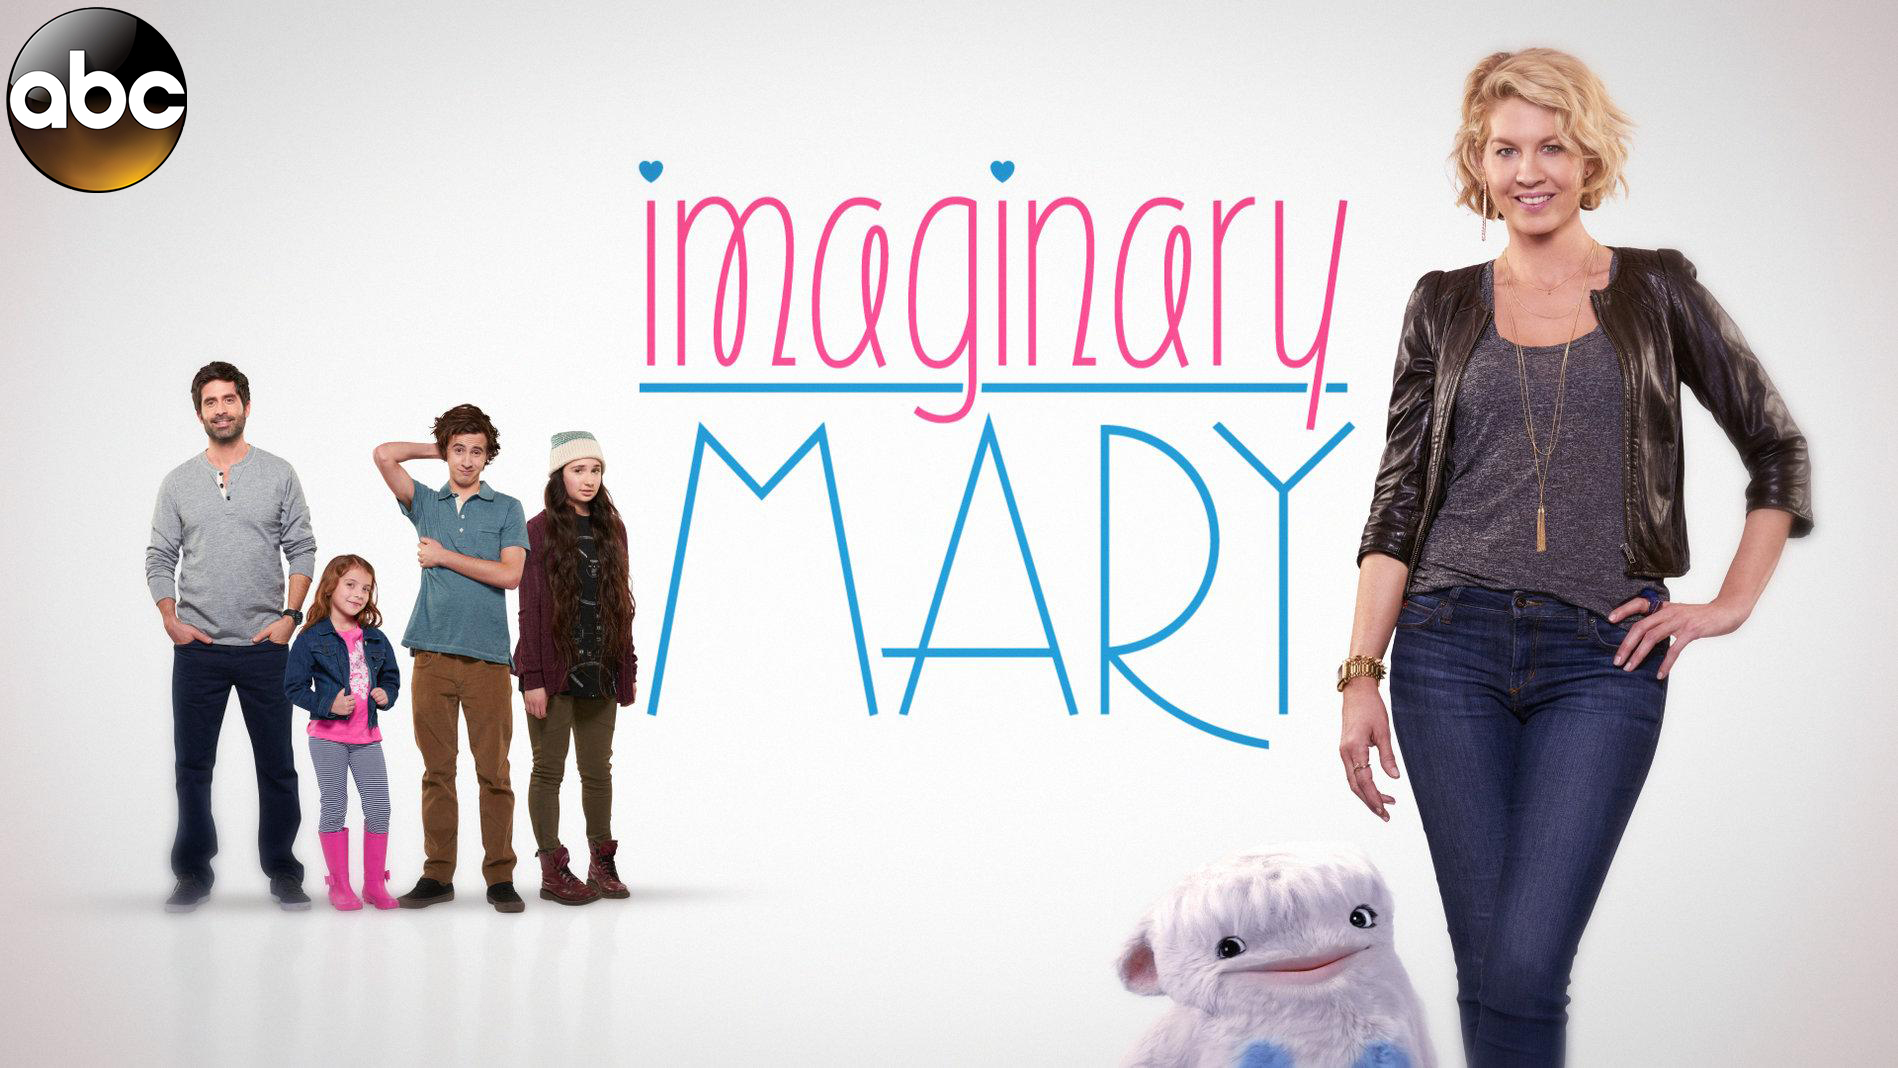 """Imaginary Mary -     stars """"Dharma & Greg"""" vet Jenna Elfman as an independent career woman who falls in love with a divorced father of three. The dramatic change in her life gets even more interesting when the """"slightly unhinged"""" imaginary childhood friend suddenly resurfaces to guide her through this critical juncture.       Click Below for Trailer:"""